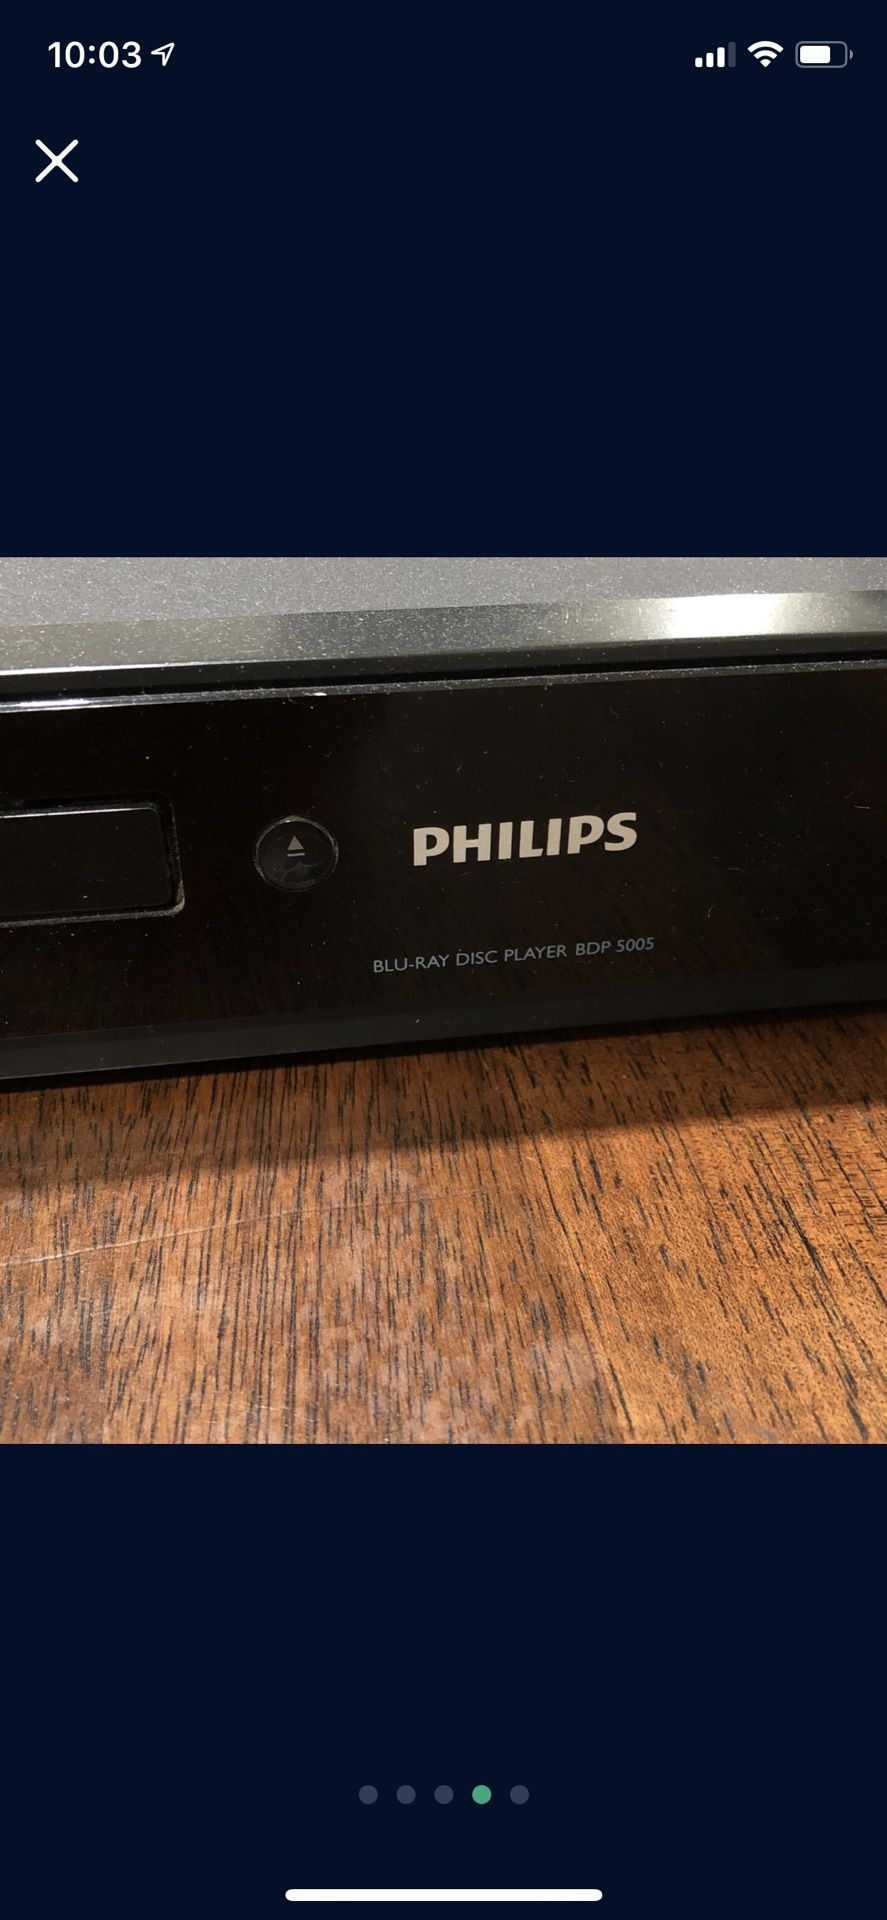 Blu-ray player with DVD collection